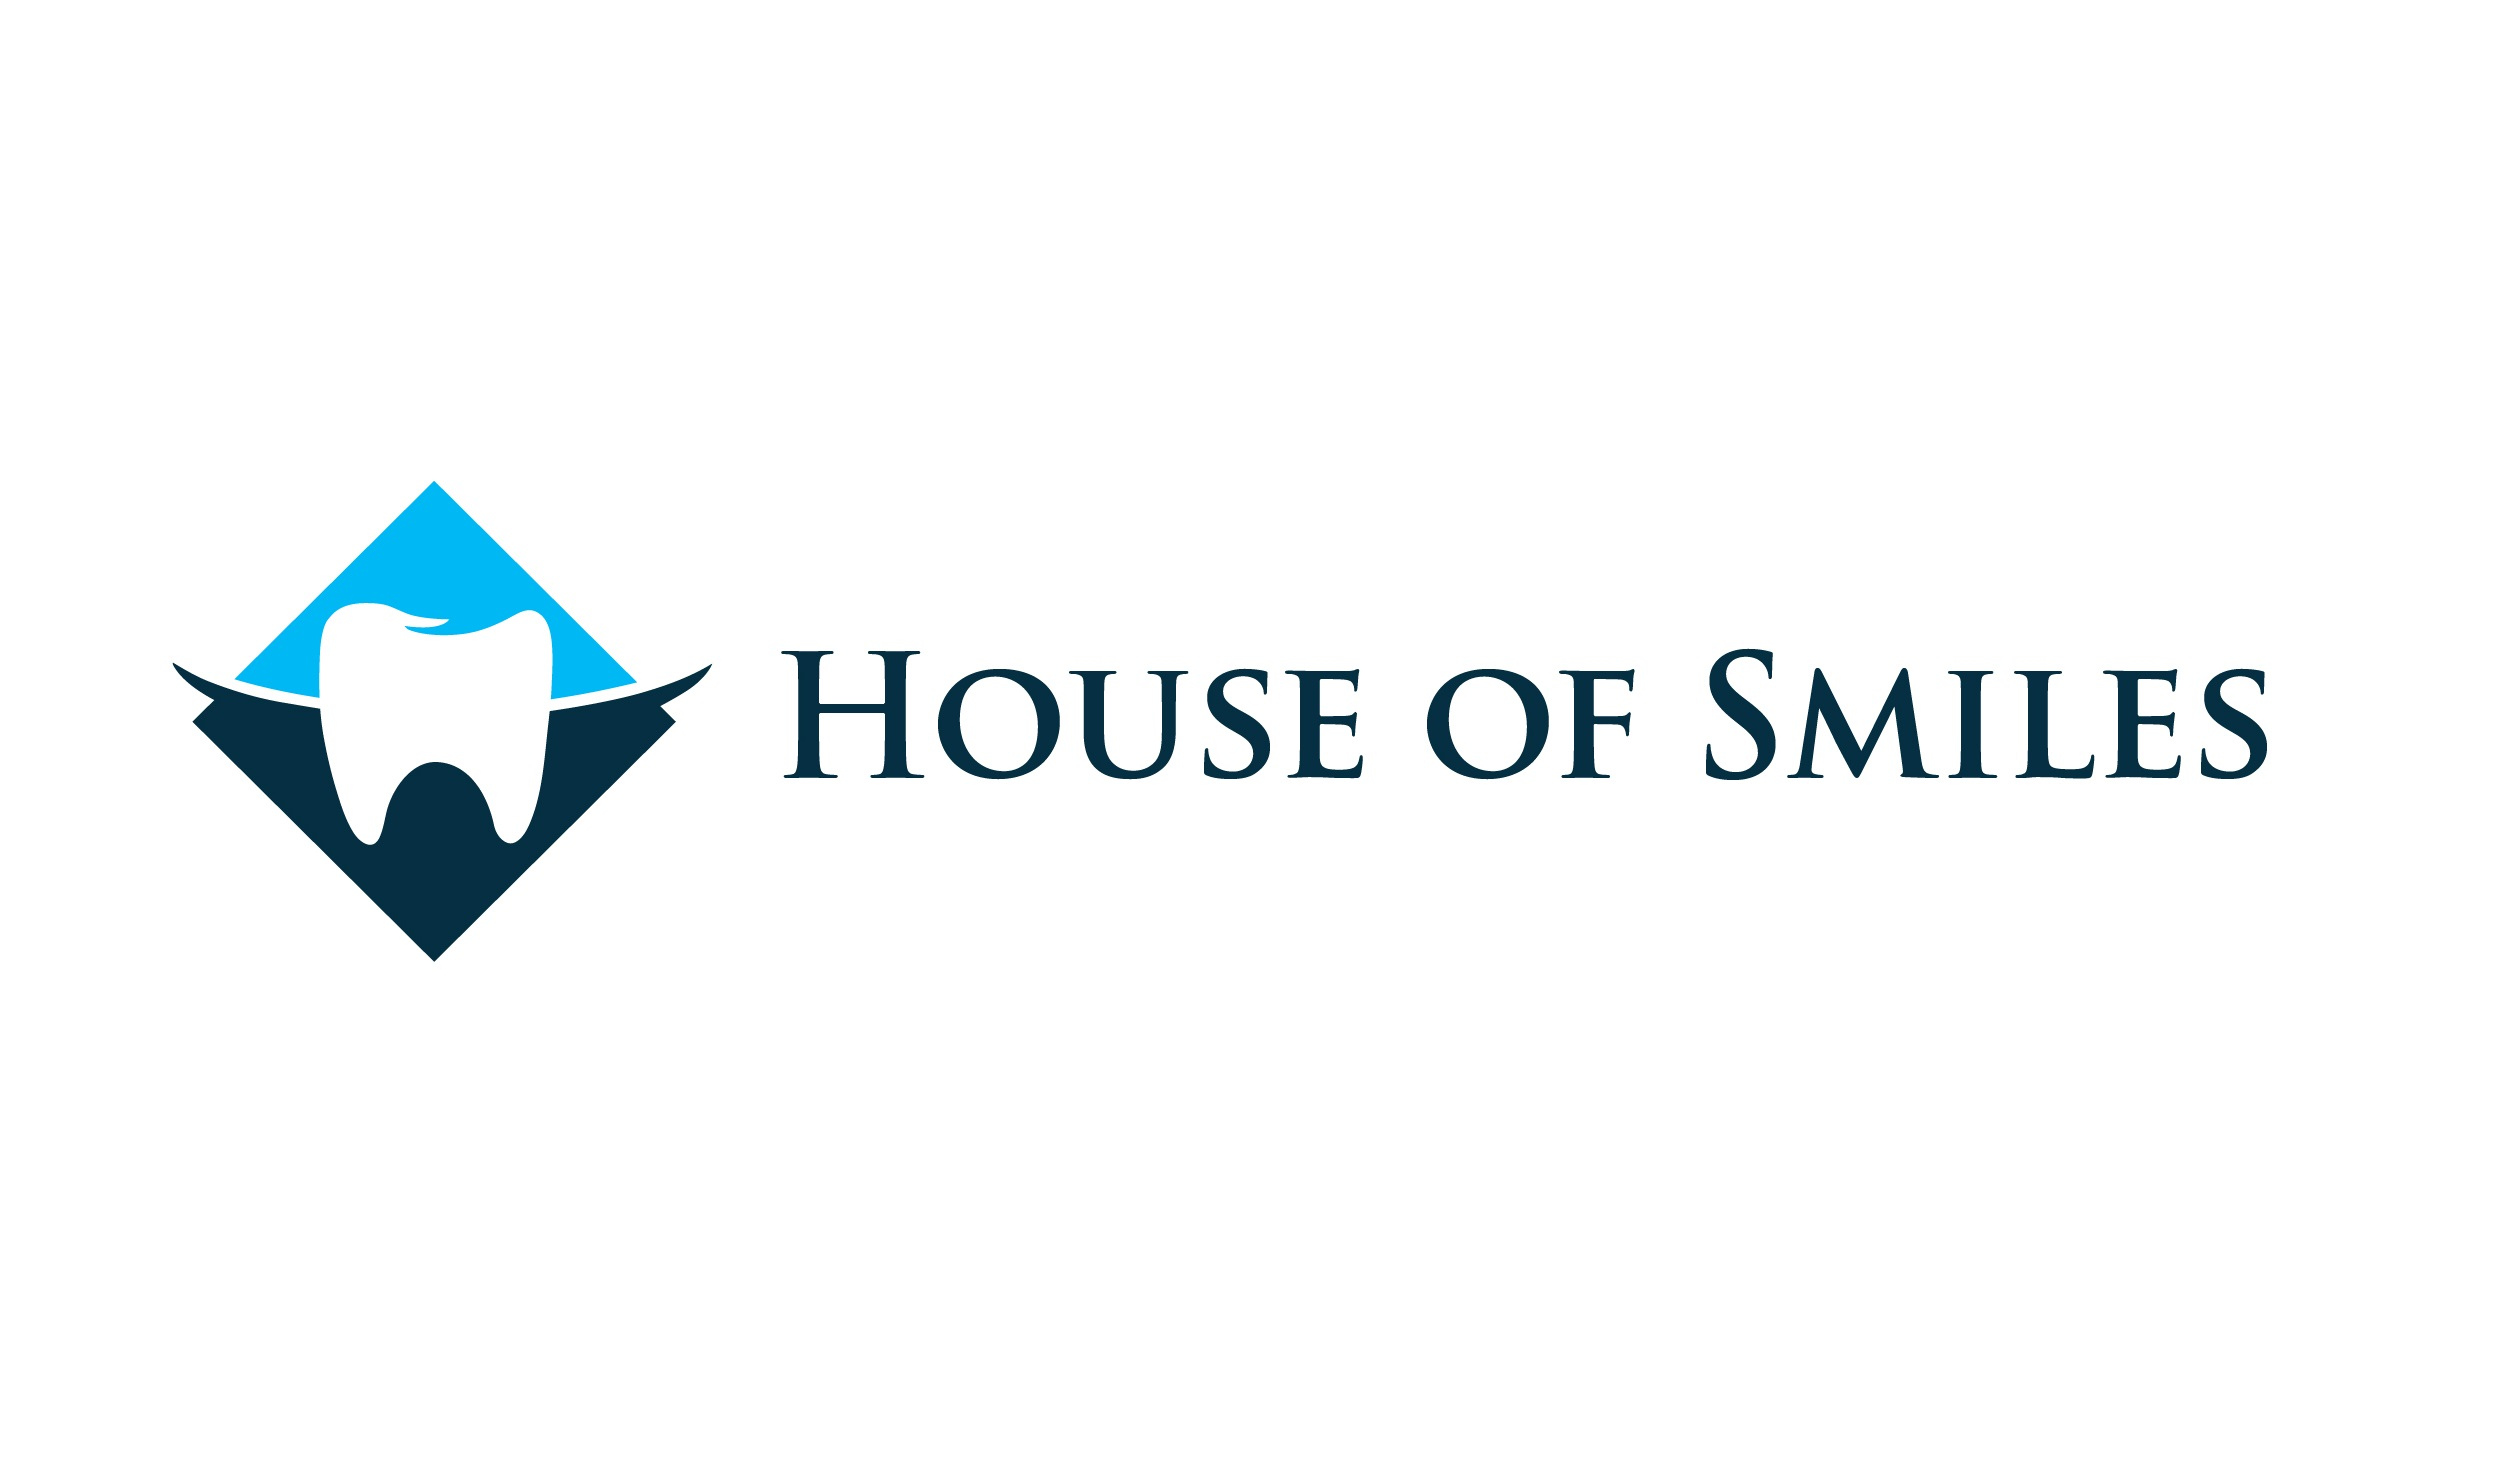 House of Smiles Cockburn Logo